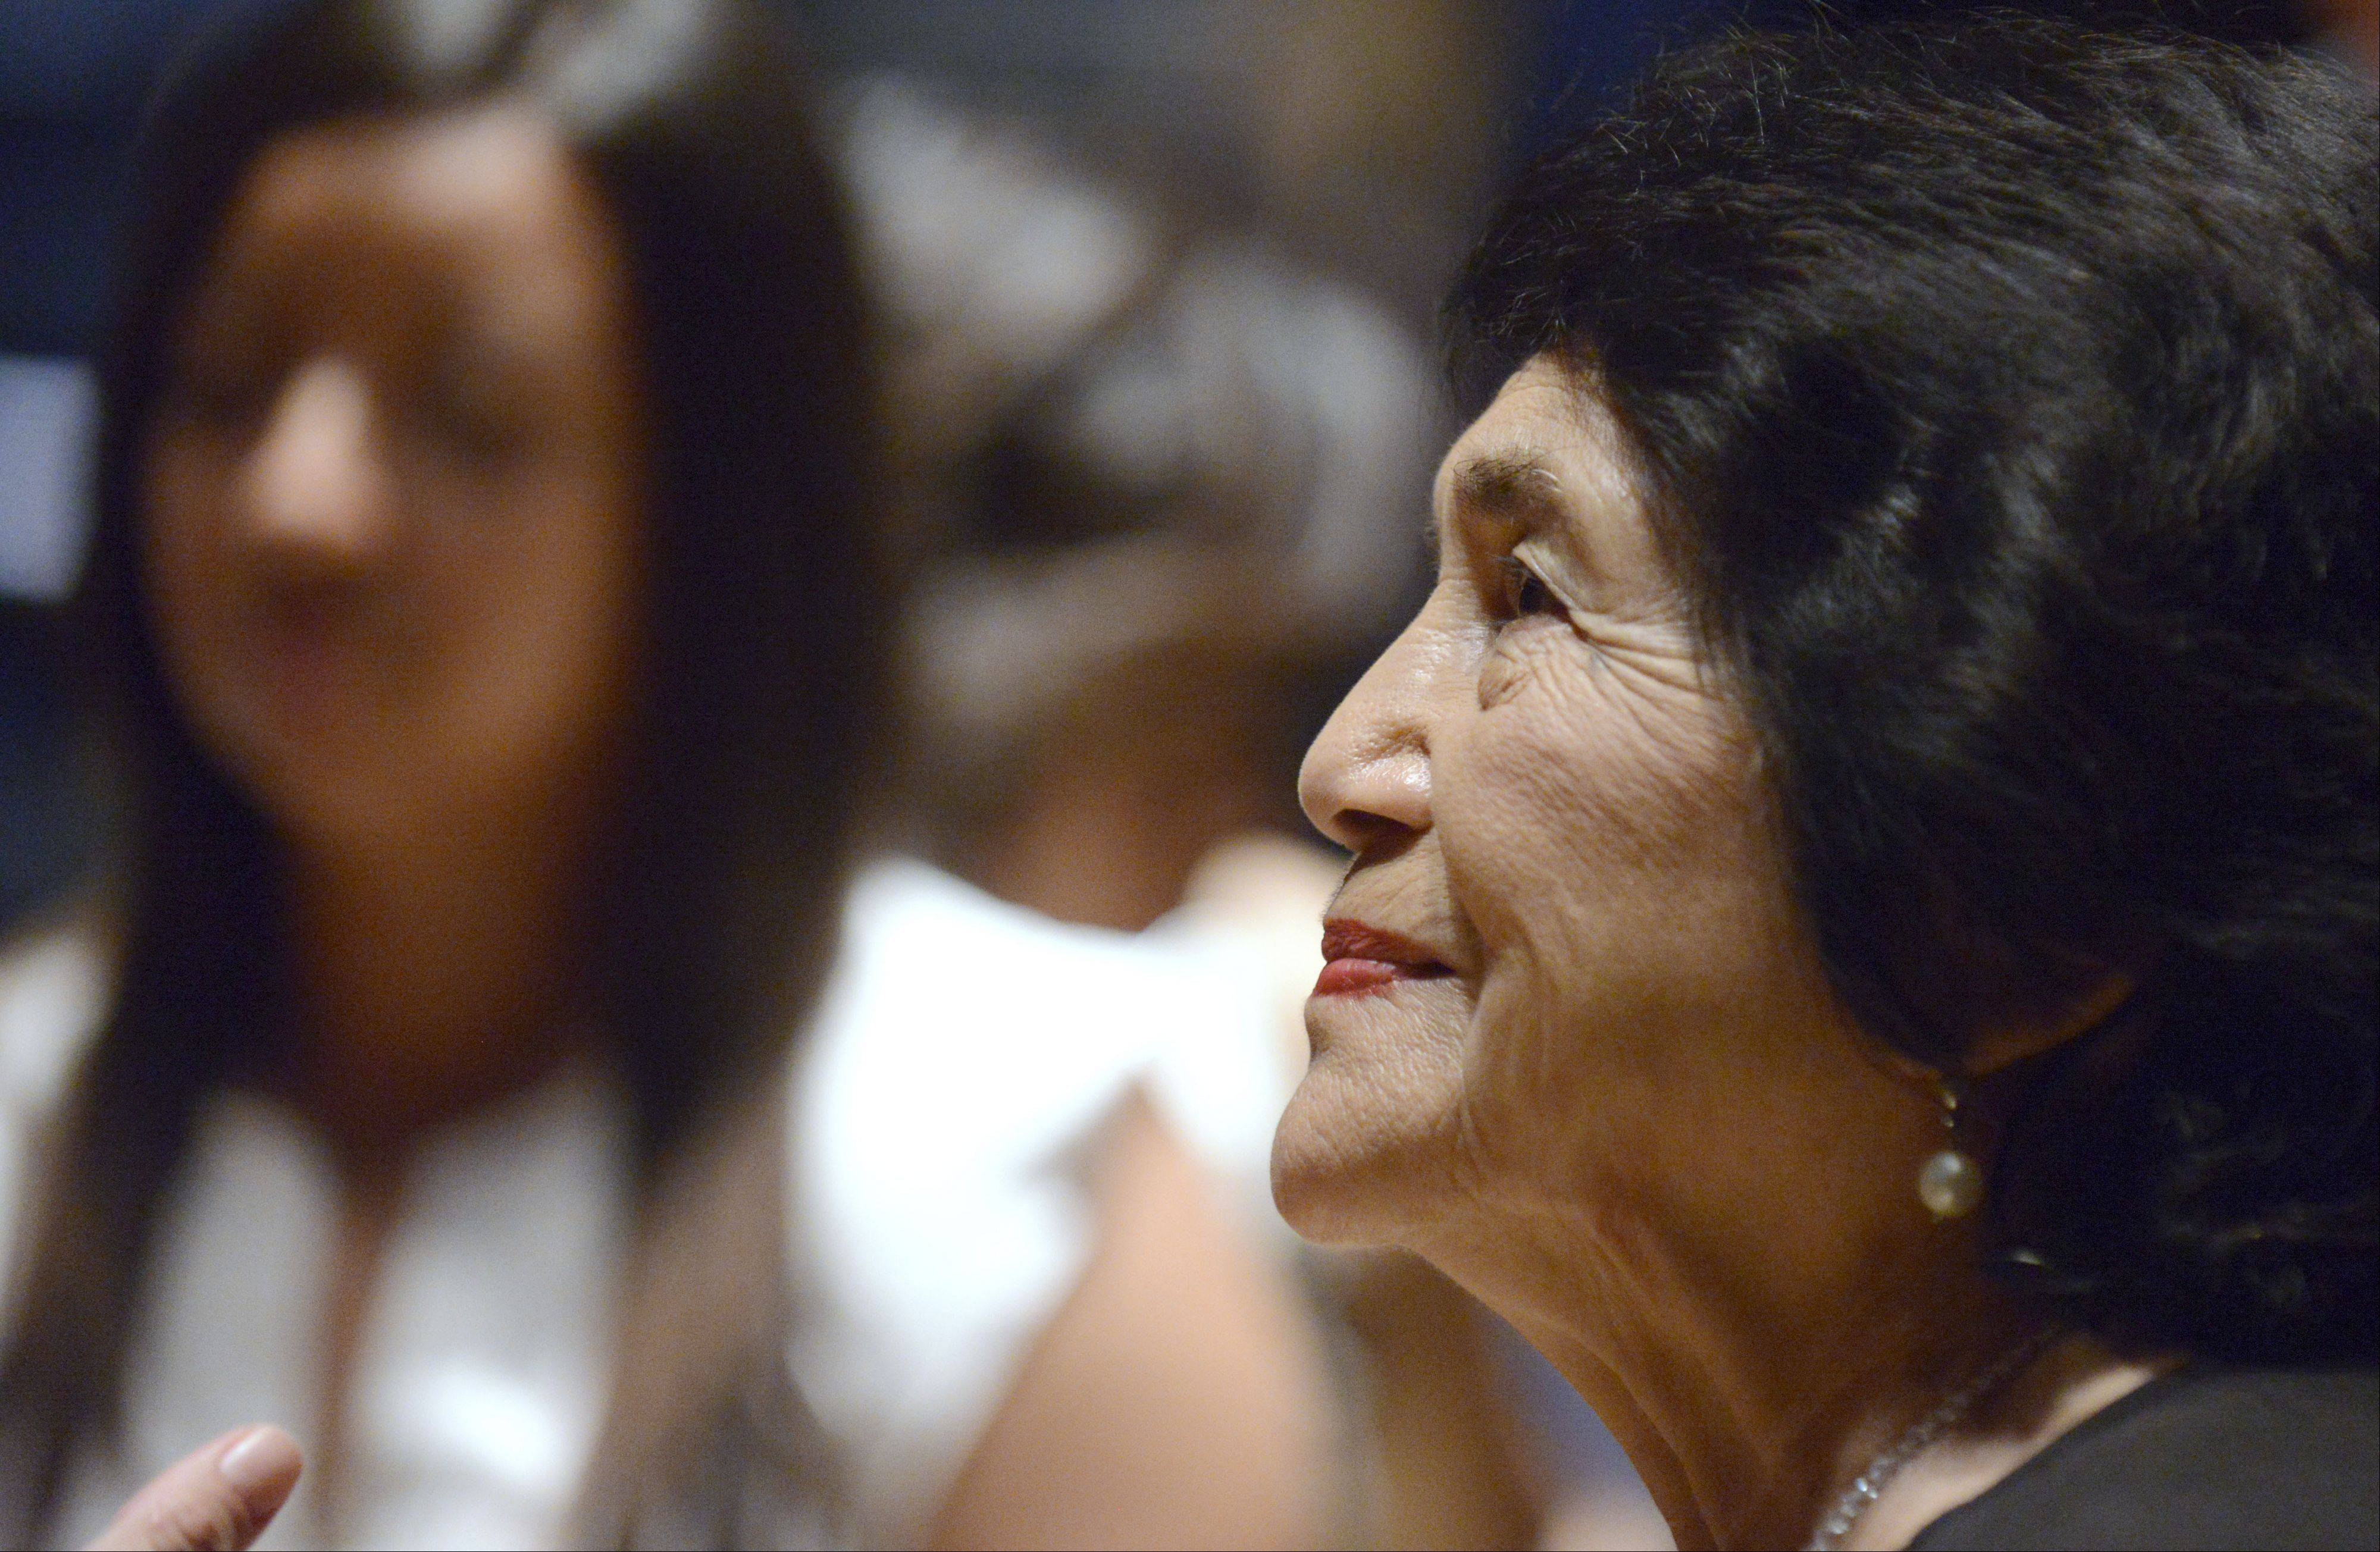 Dolores Huerta, a 2012 Presidential Medal of Freedom recipient, speaks Thursday during an open forum at Elgin Community College's 24th Annual Hispanic Heritage Month kickoff event.